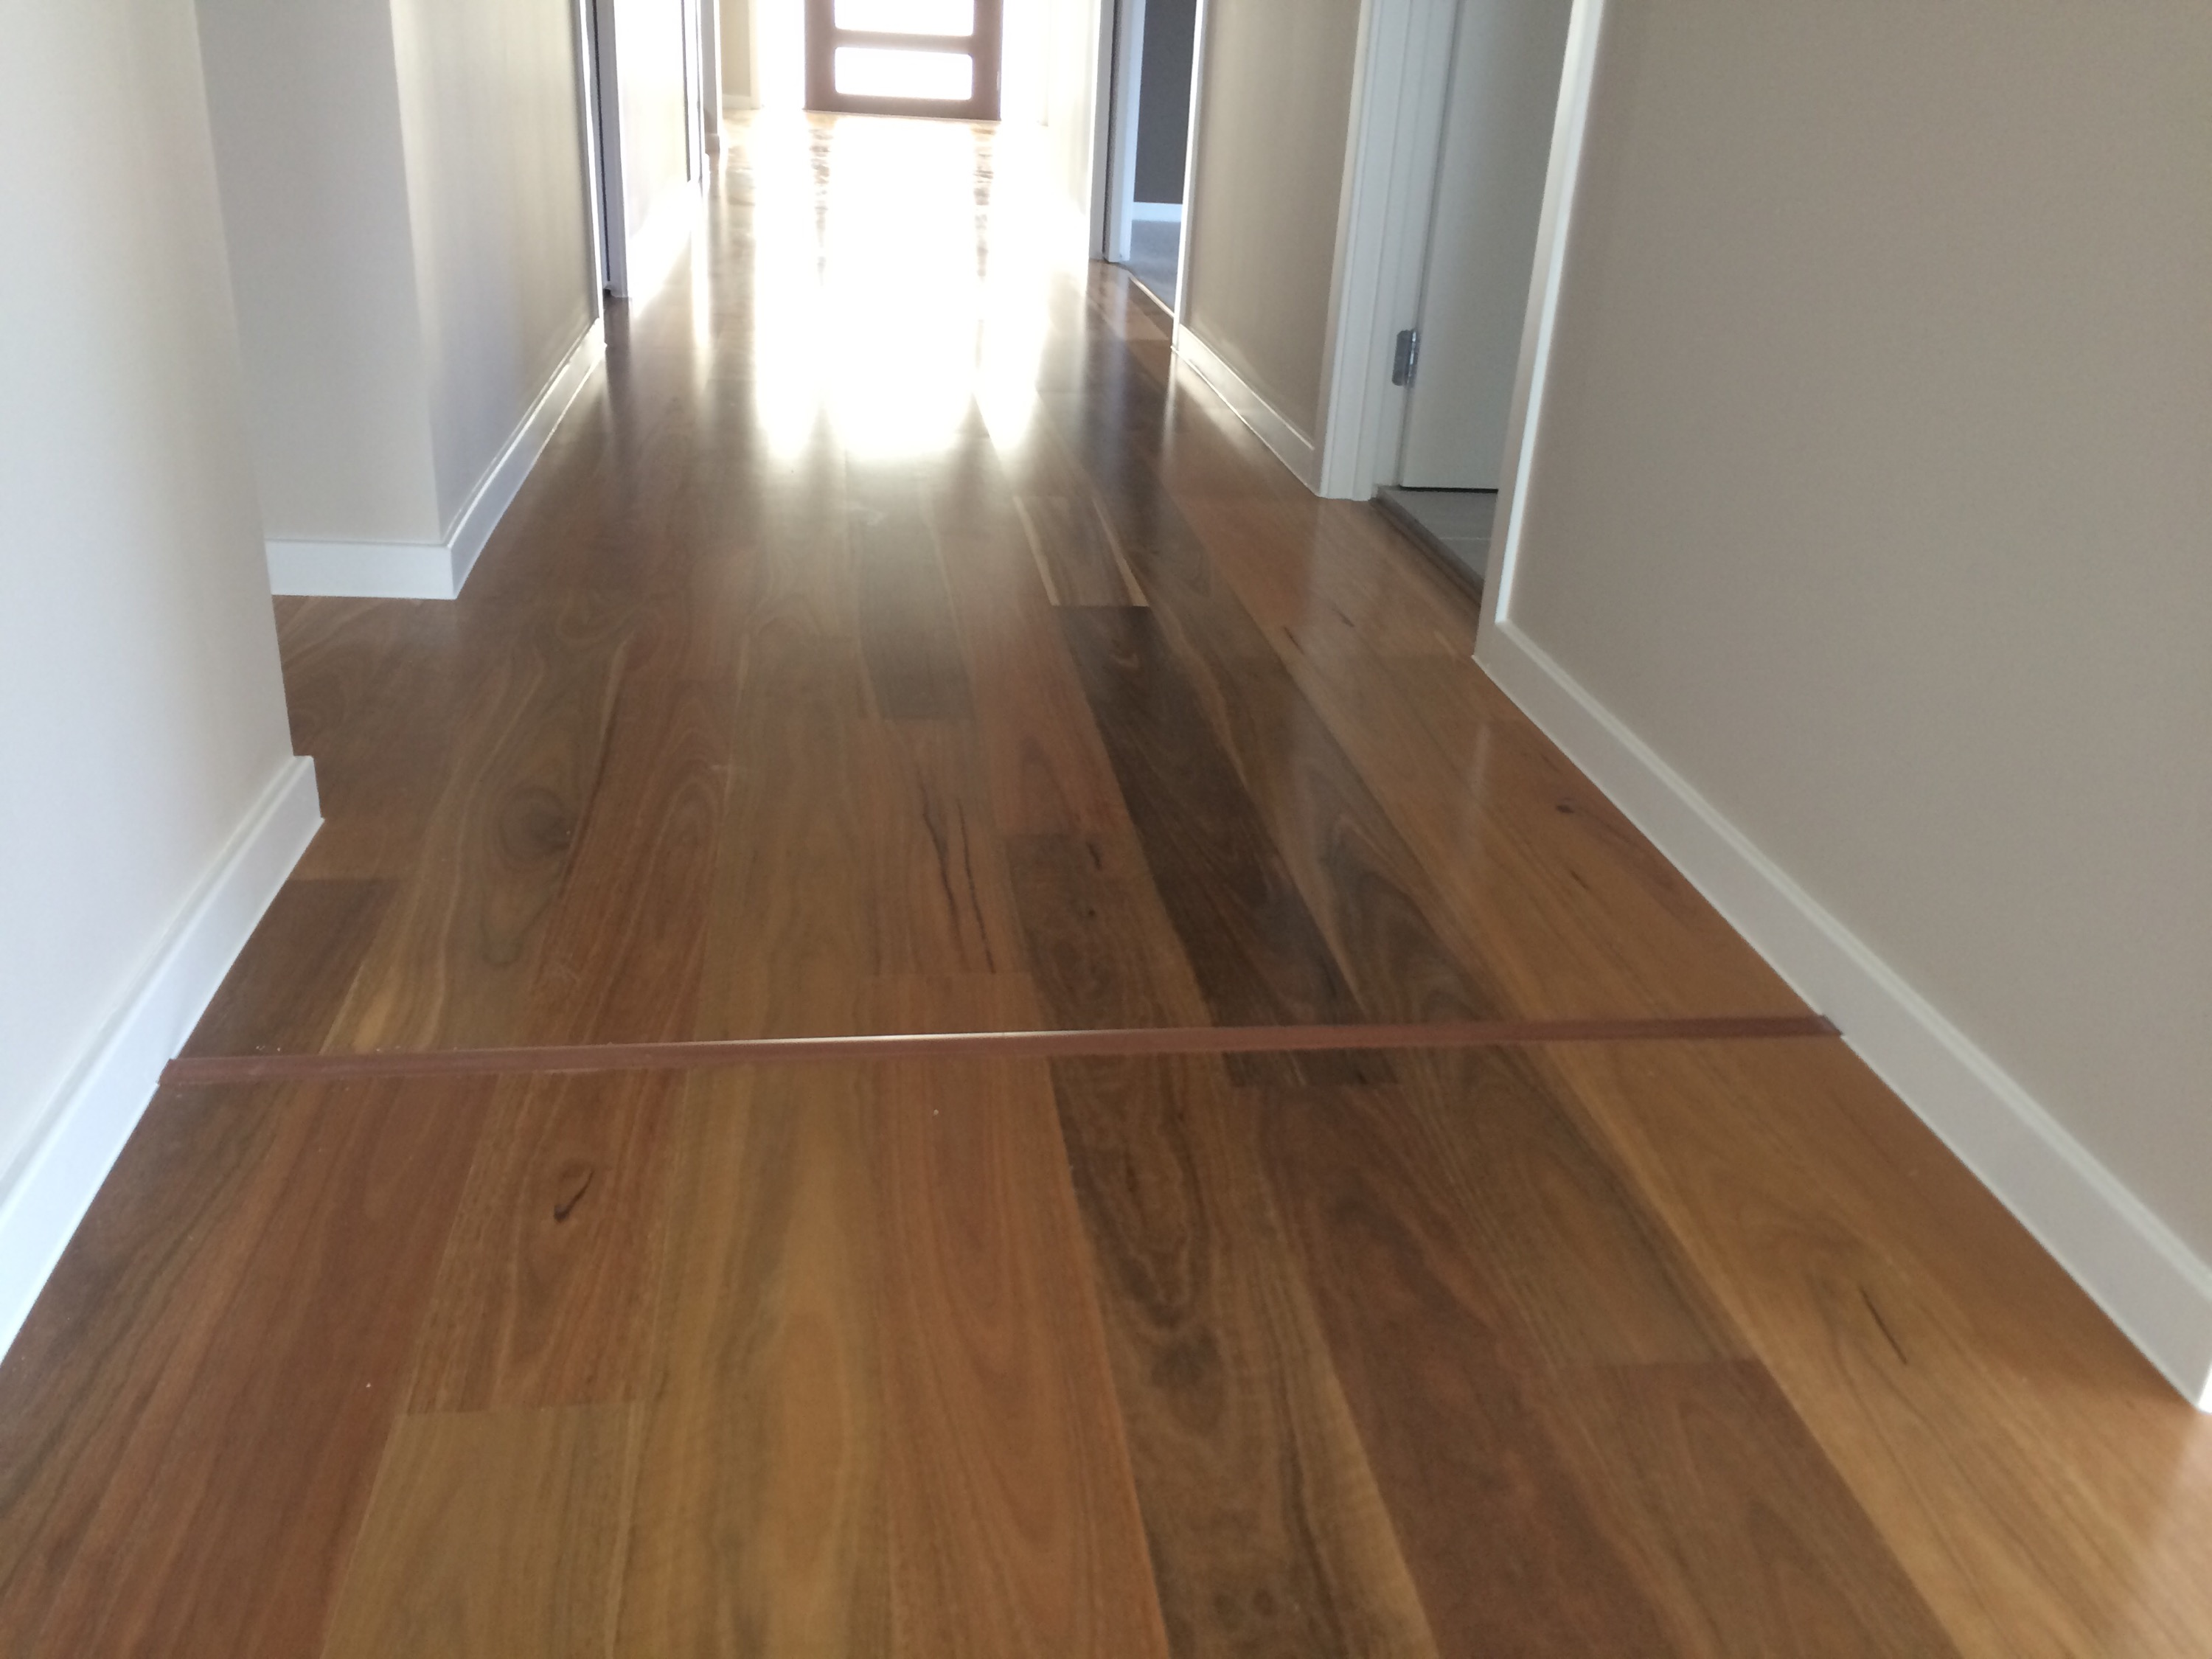 Expansion Joints Timber Laminate Flooring Viewfloor Co